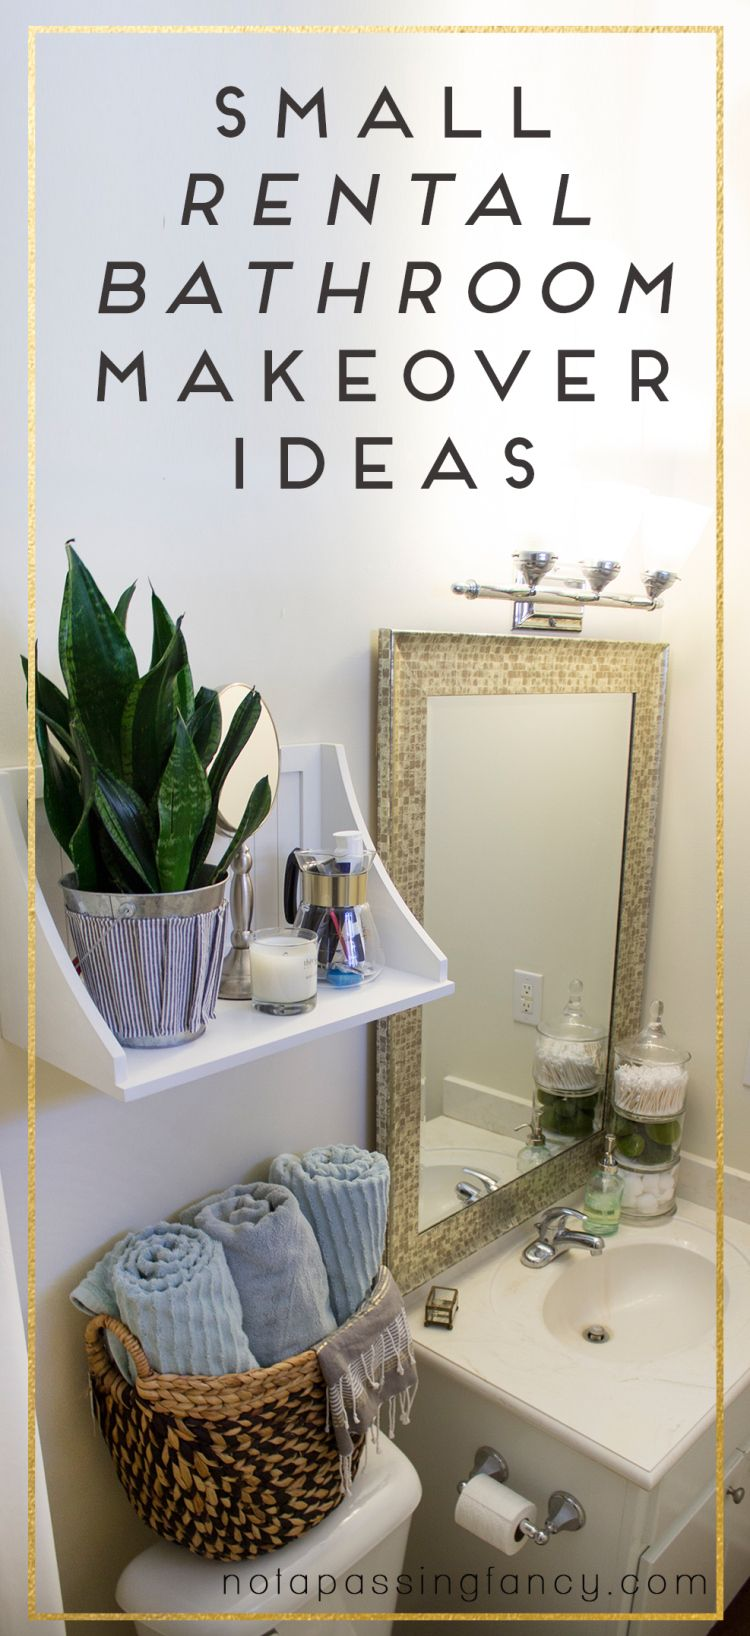 Small rental bathroom makeover ideas not a passing fancy for Small bathroom makeover ideas